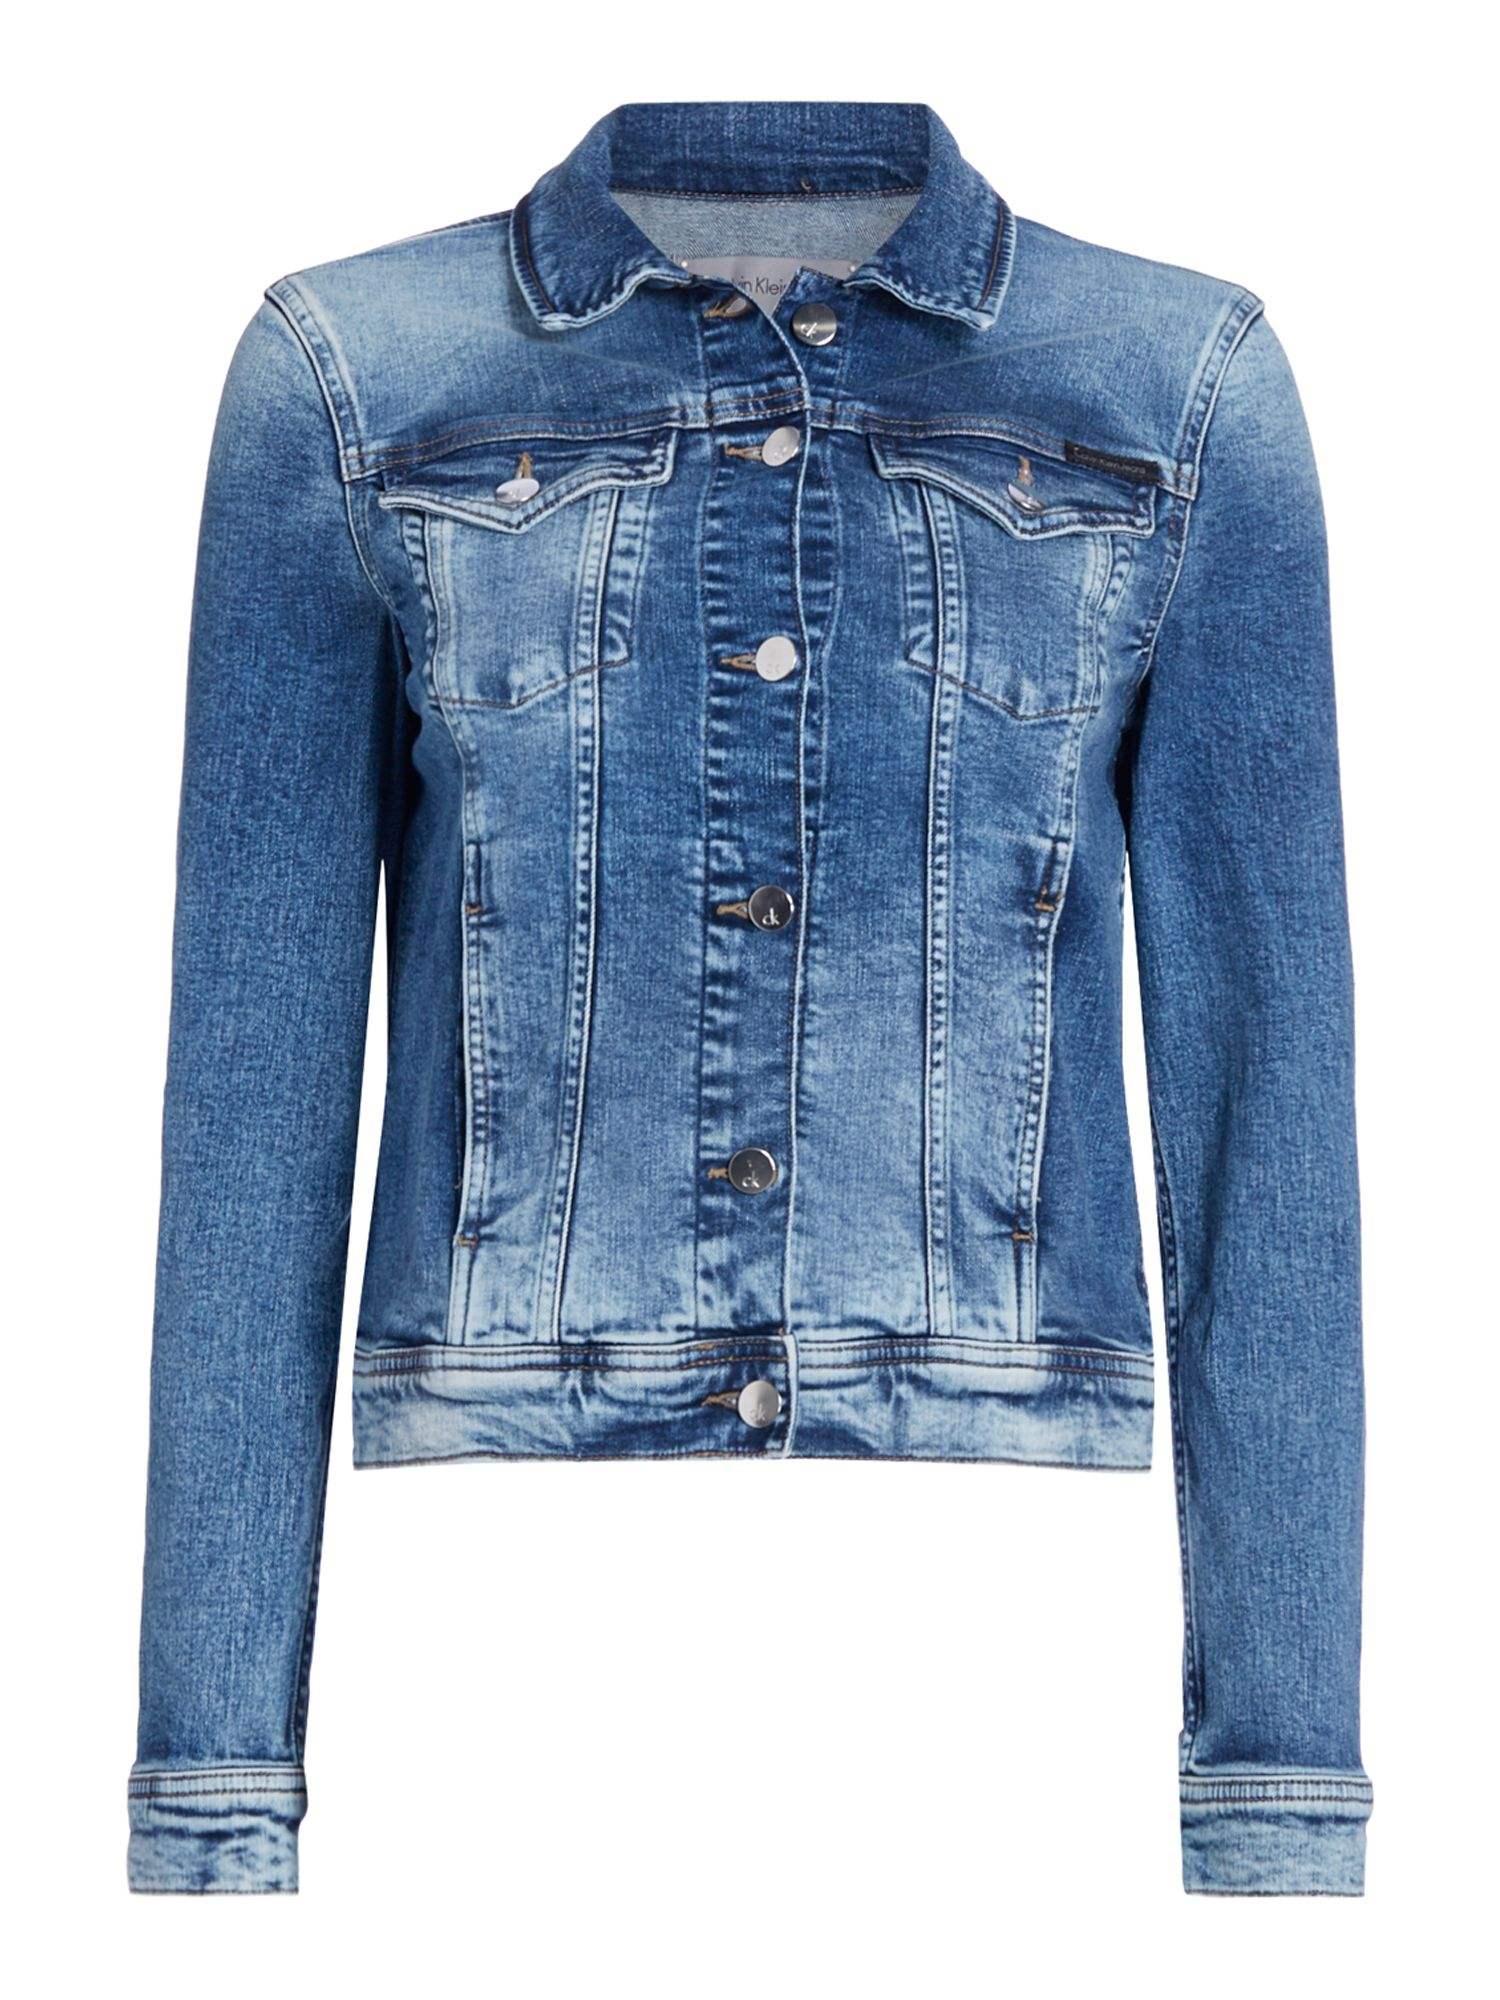 Calvin Klein Long sleeves Denim Jackit with Front Pockets, Denim Mid Wash